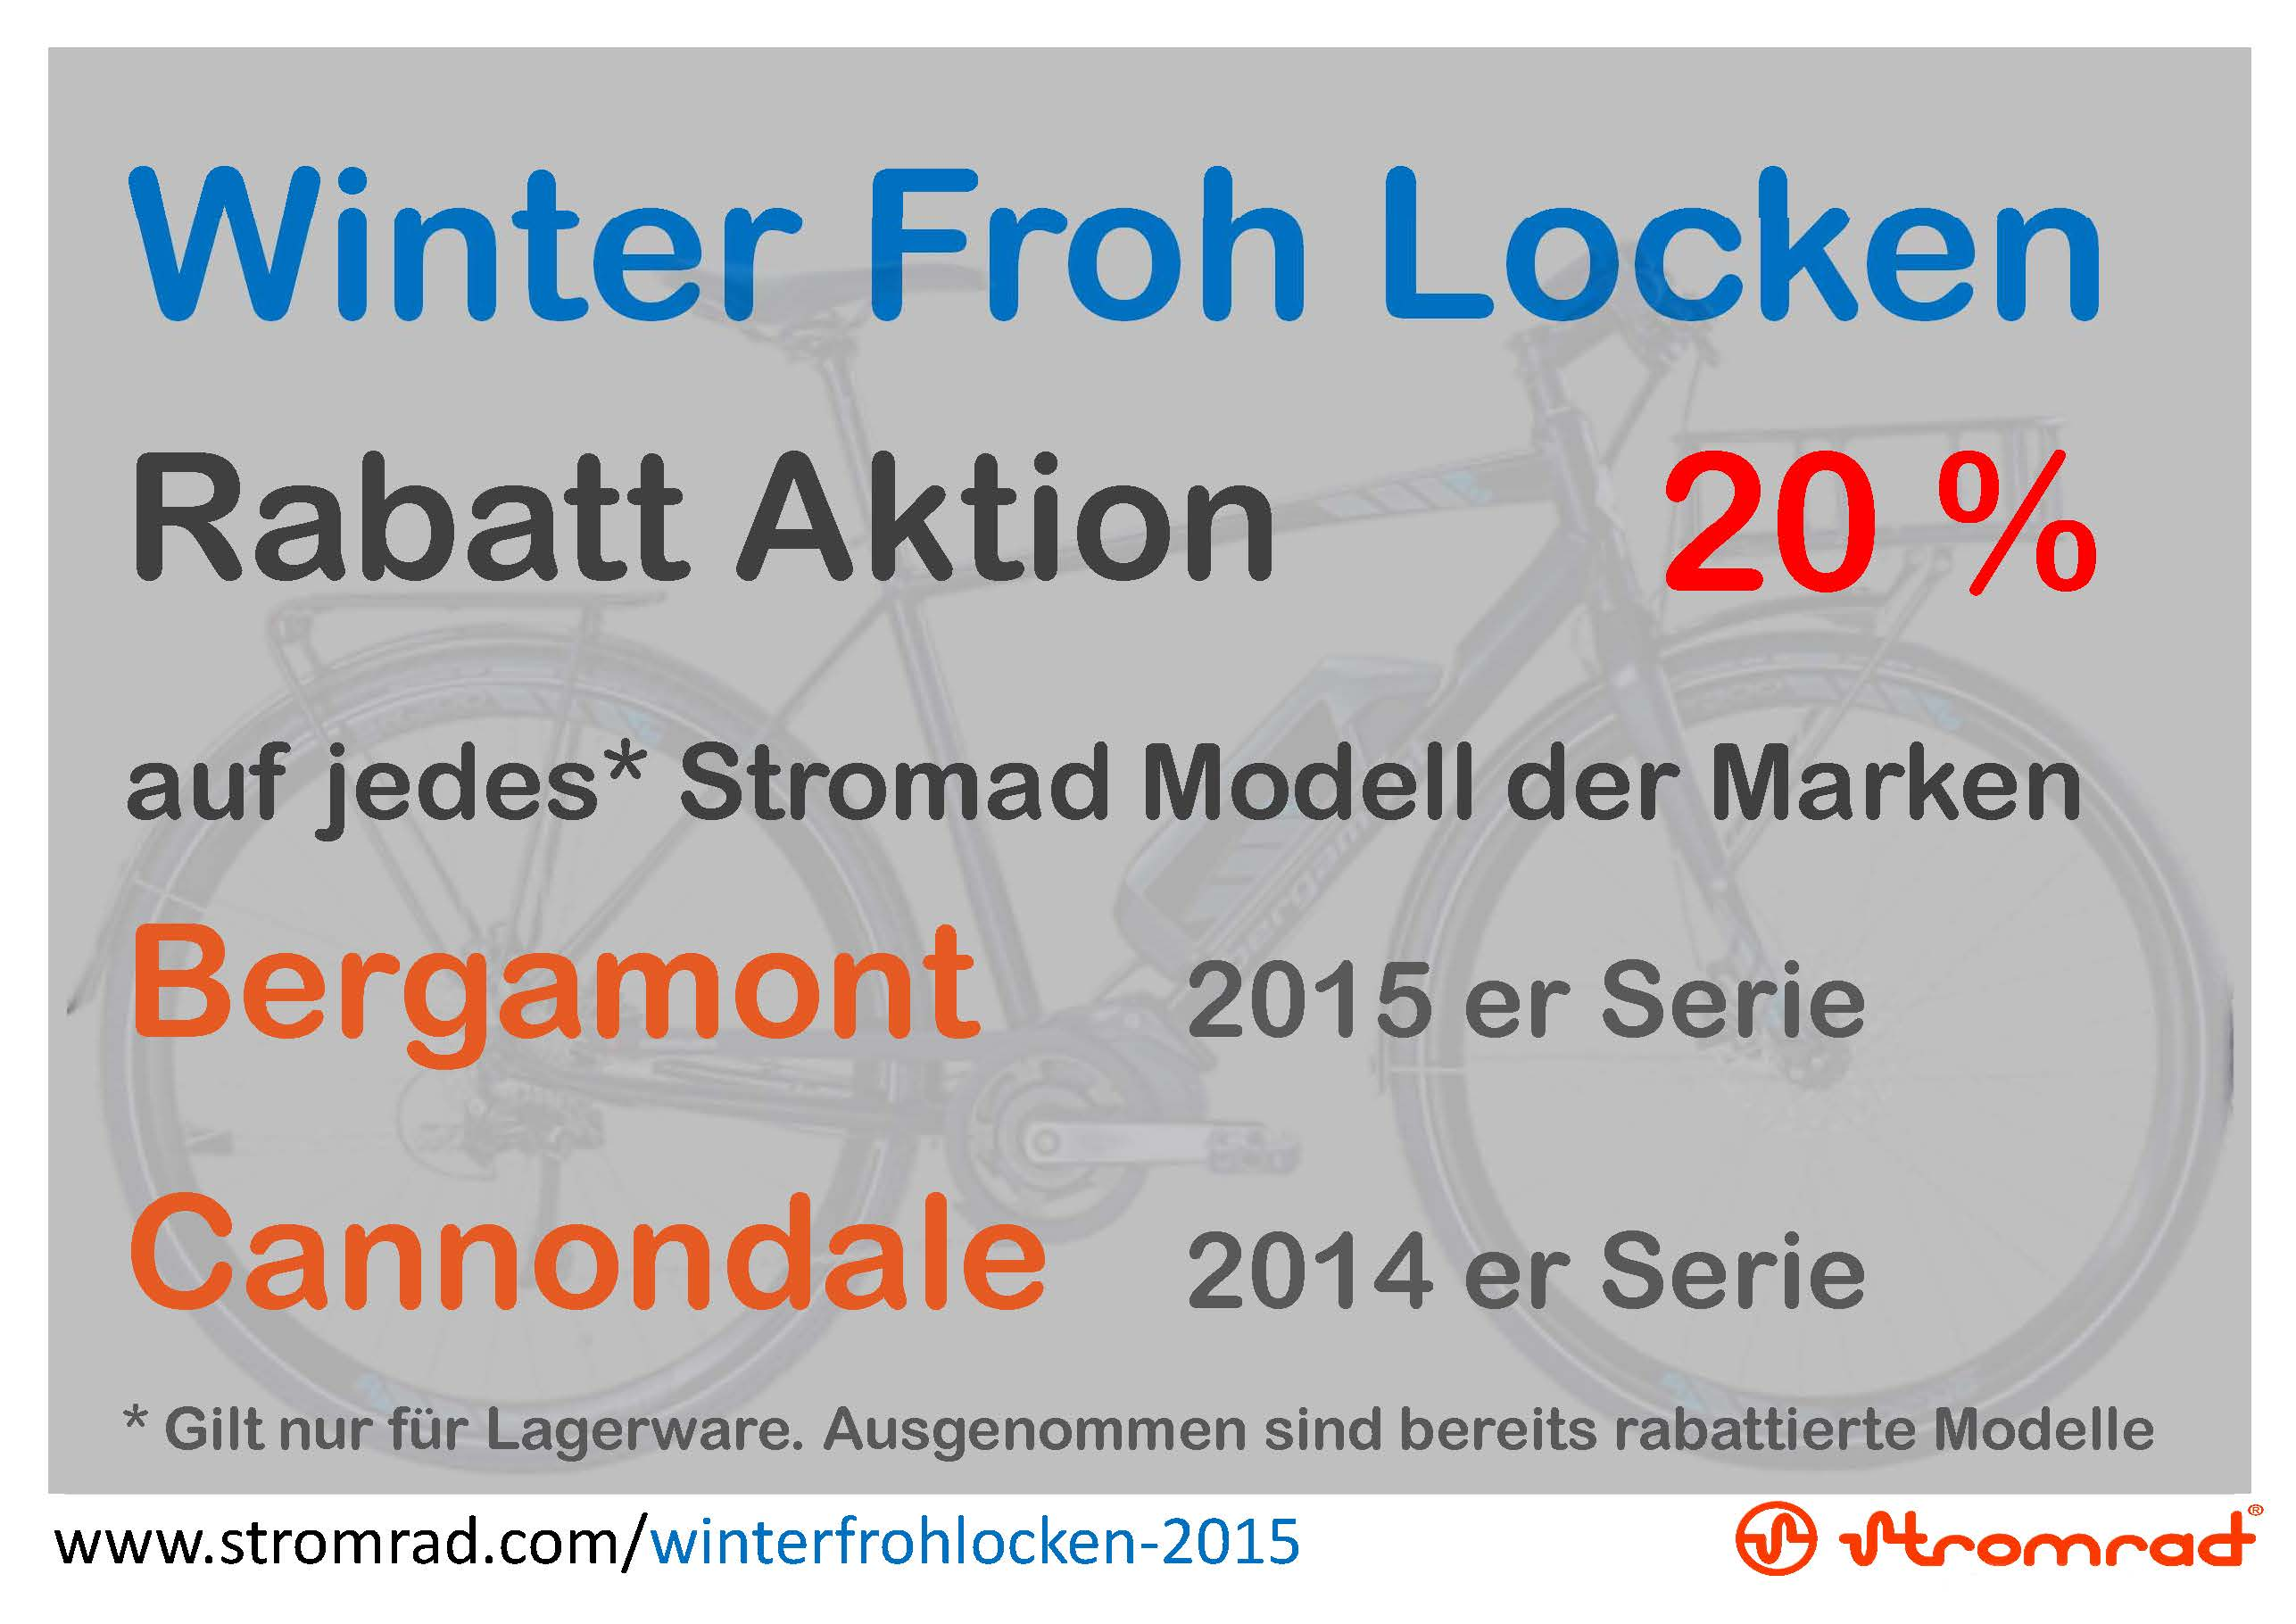 Stromrad Stuttgart Rabatt Aktion Winter Froh Locken 2015